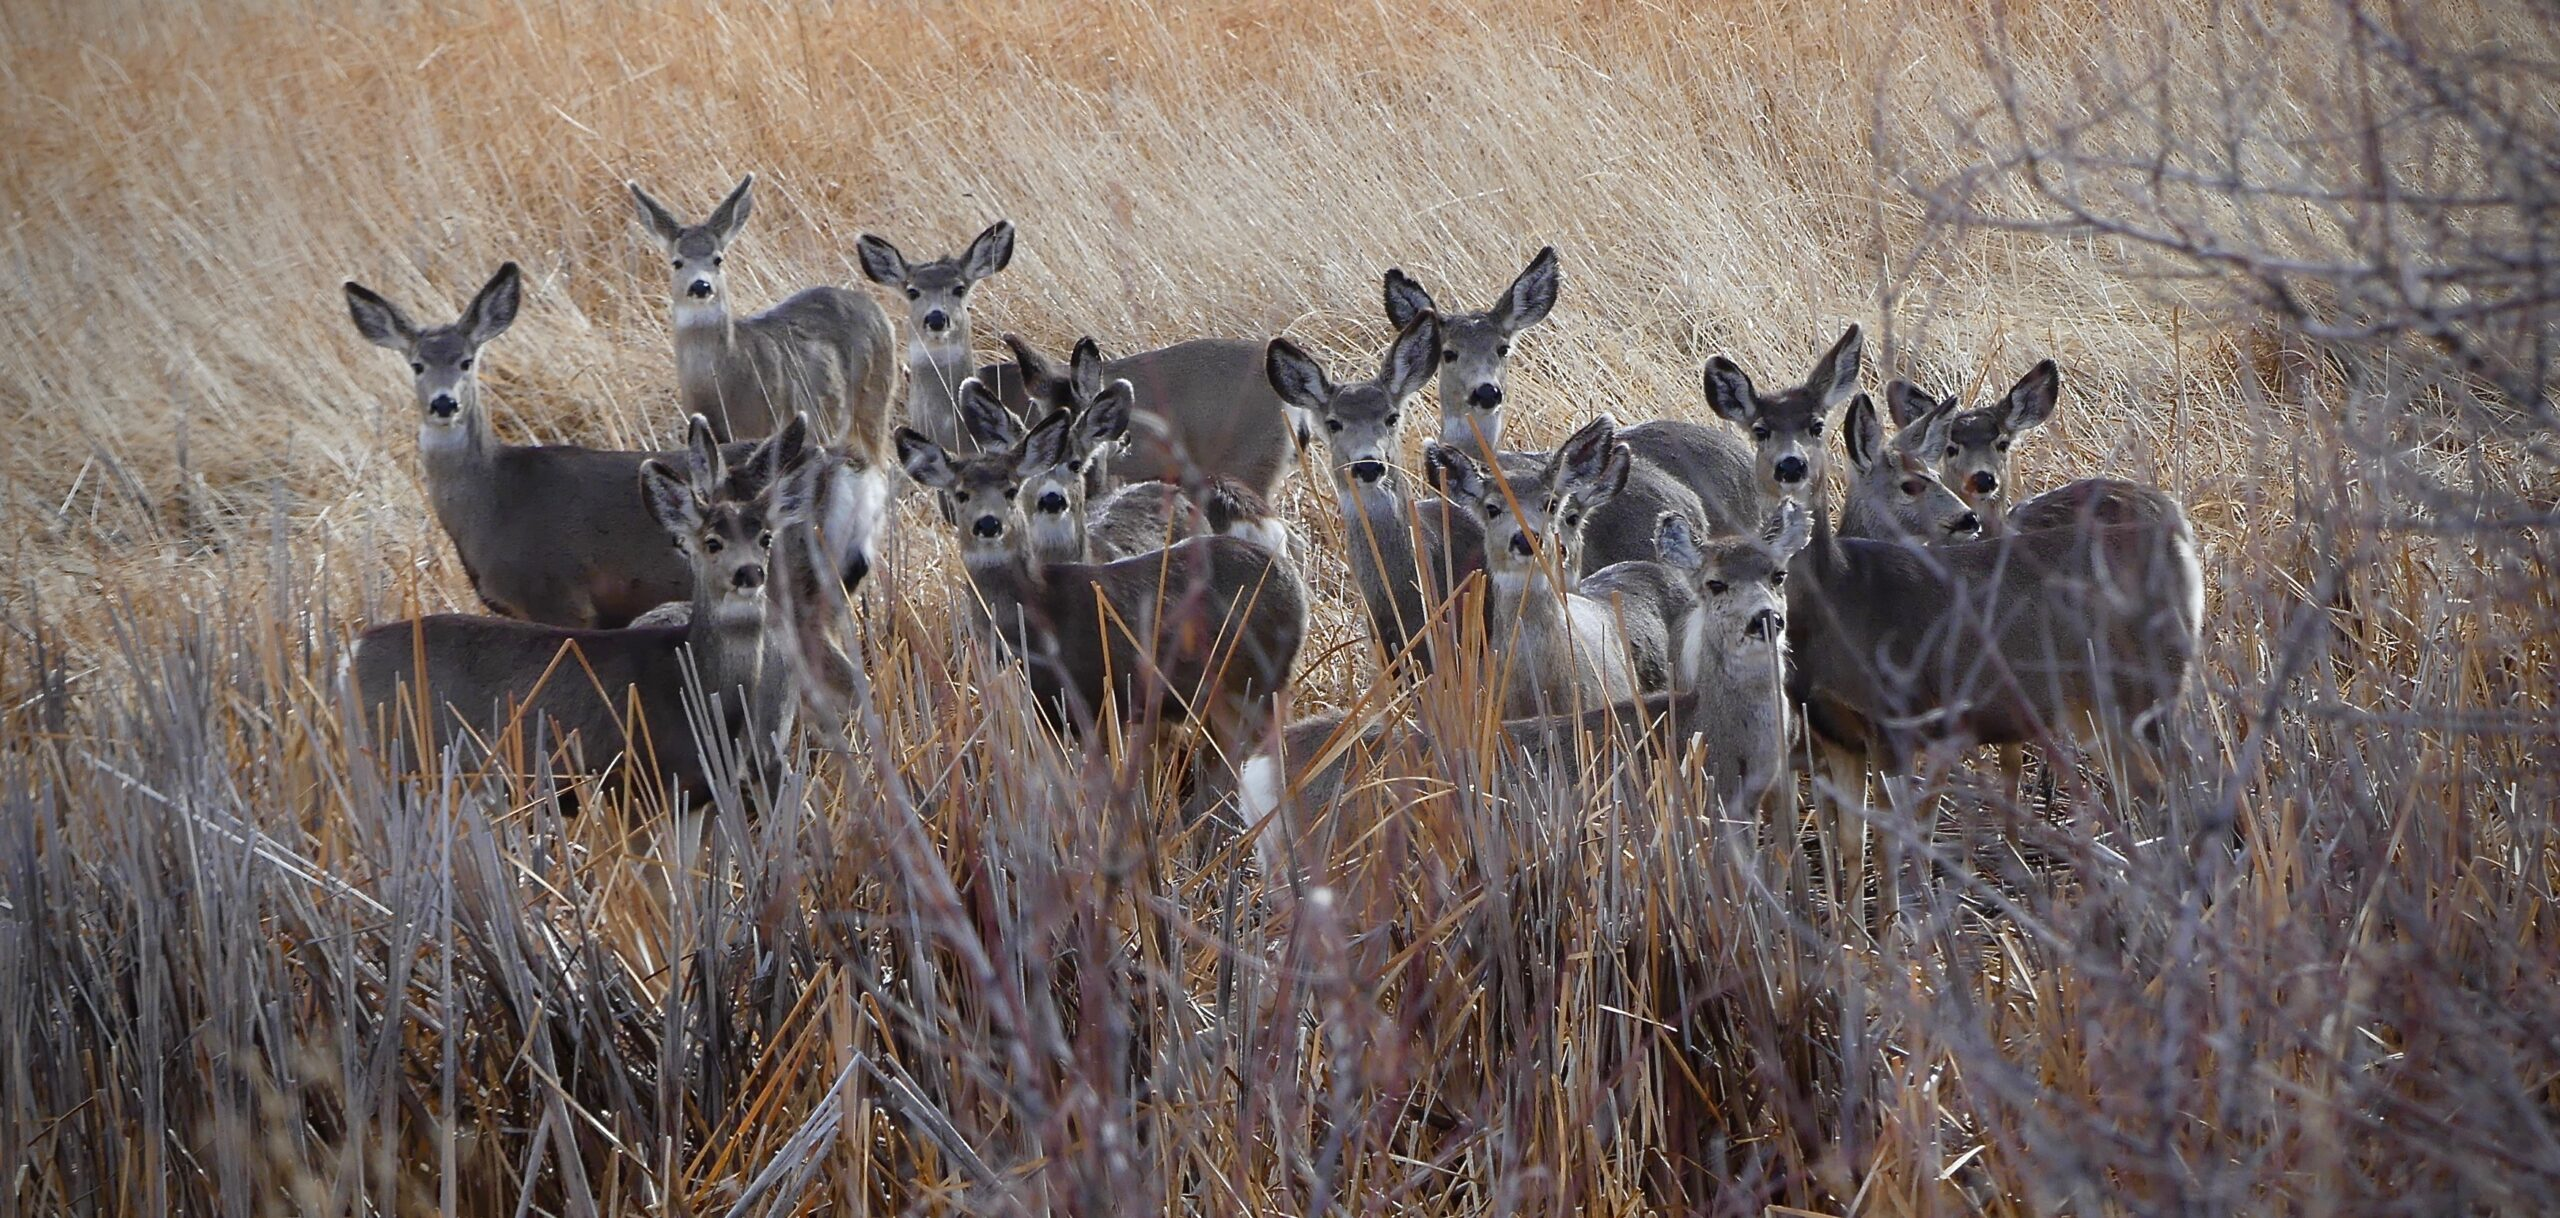 Herd of over 12 mule deer are huddled together tightly with tall, dormant vegetation surrounding them. All of the deer are looking directly at you.